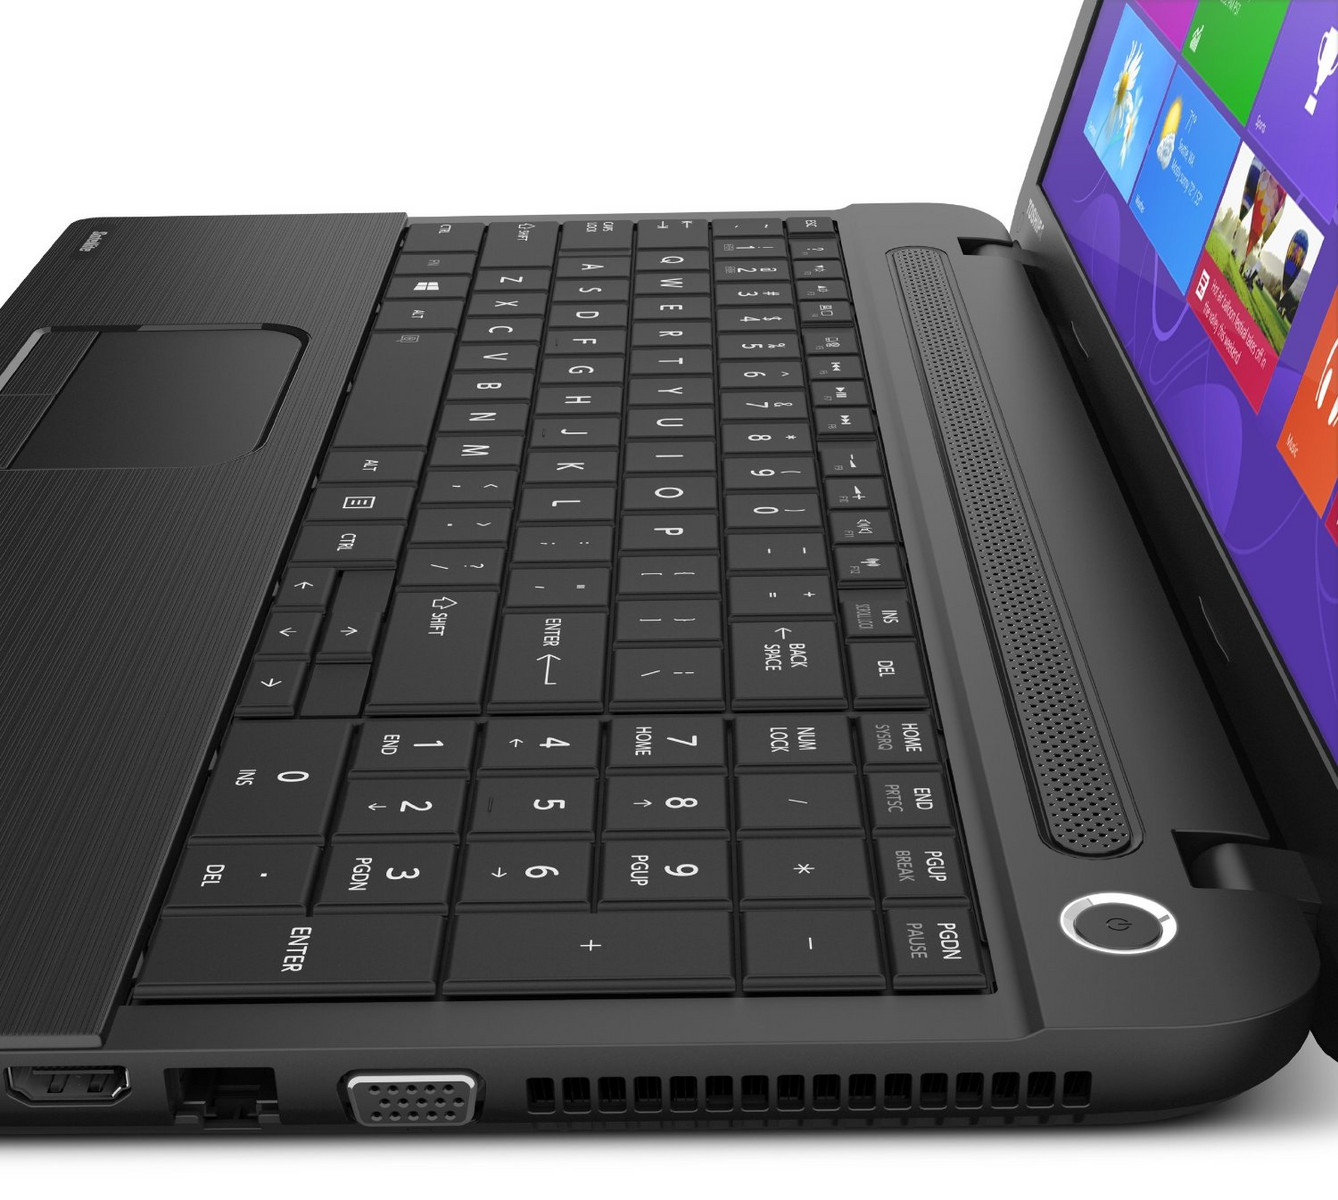 Toshiba Satellite Pro C55-A System X64 Driver Download